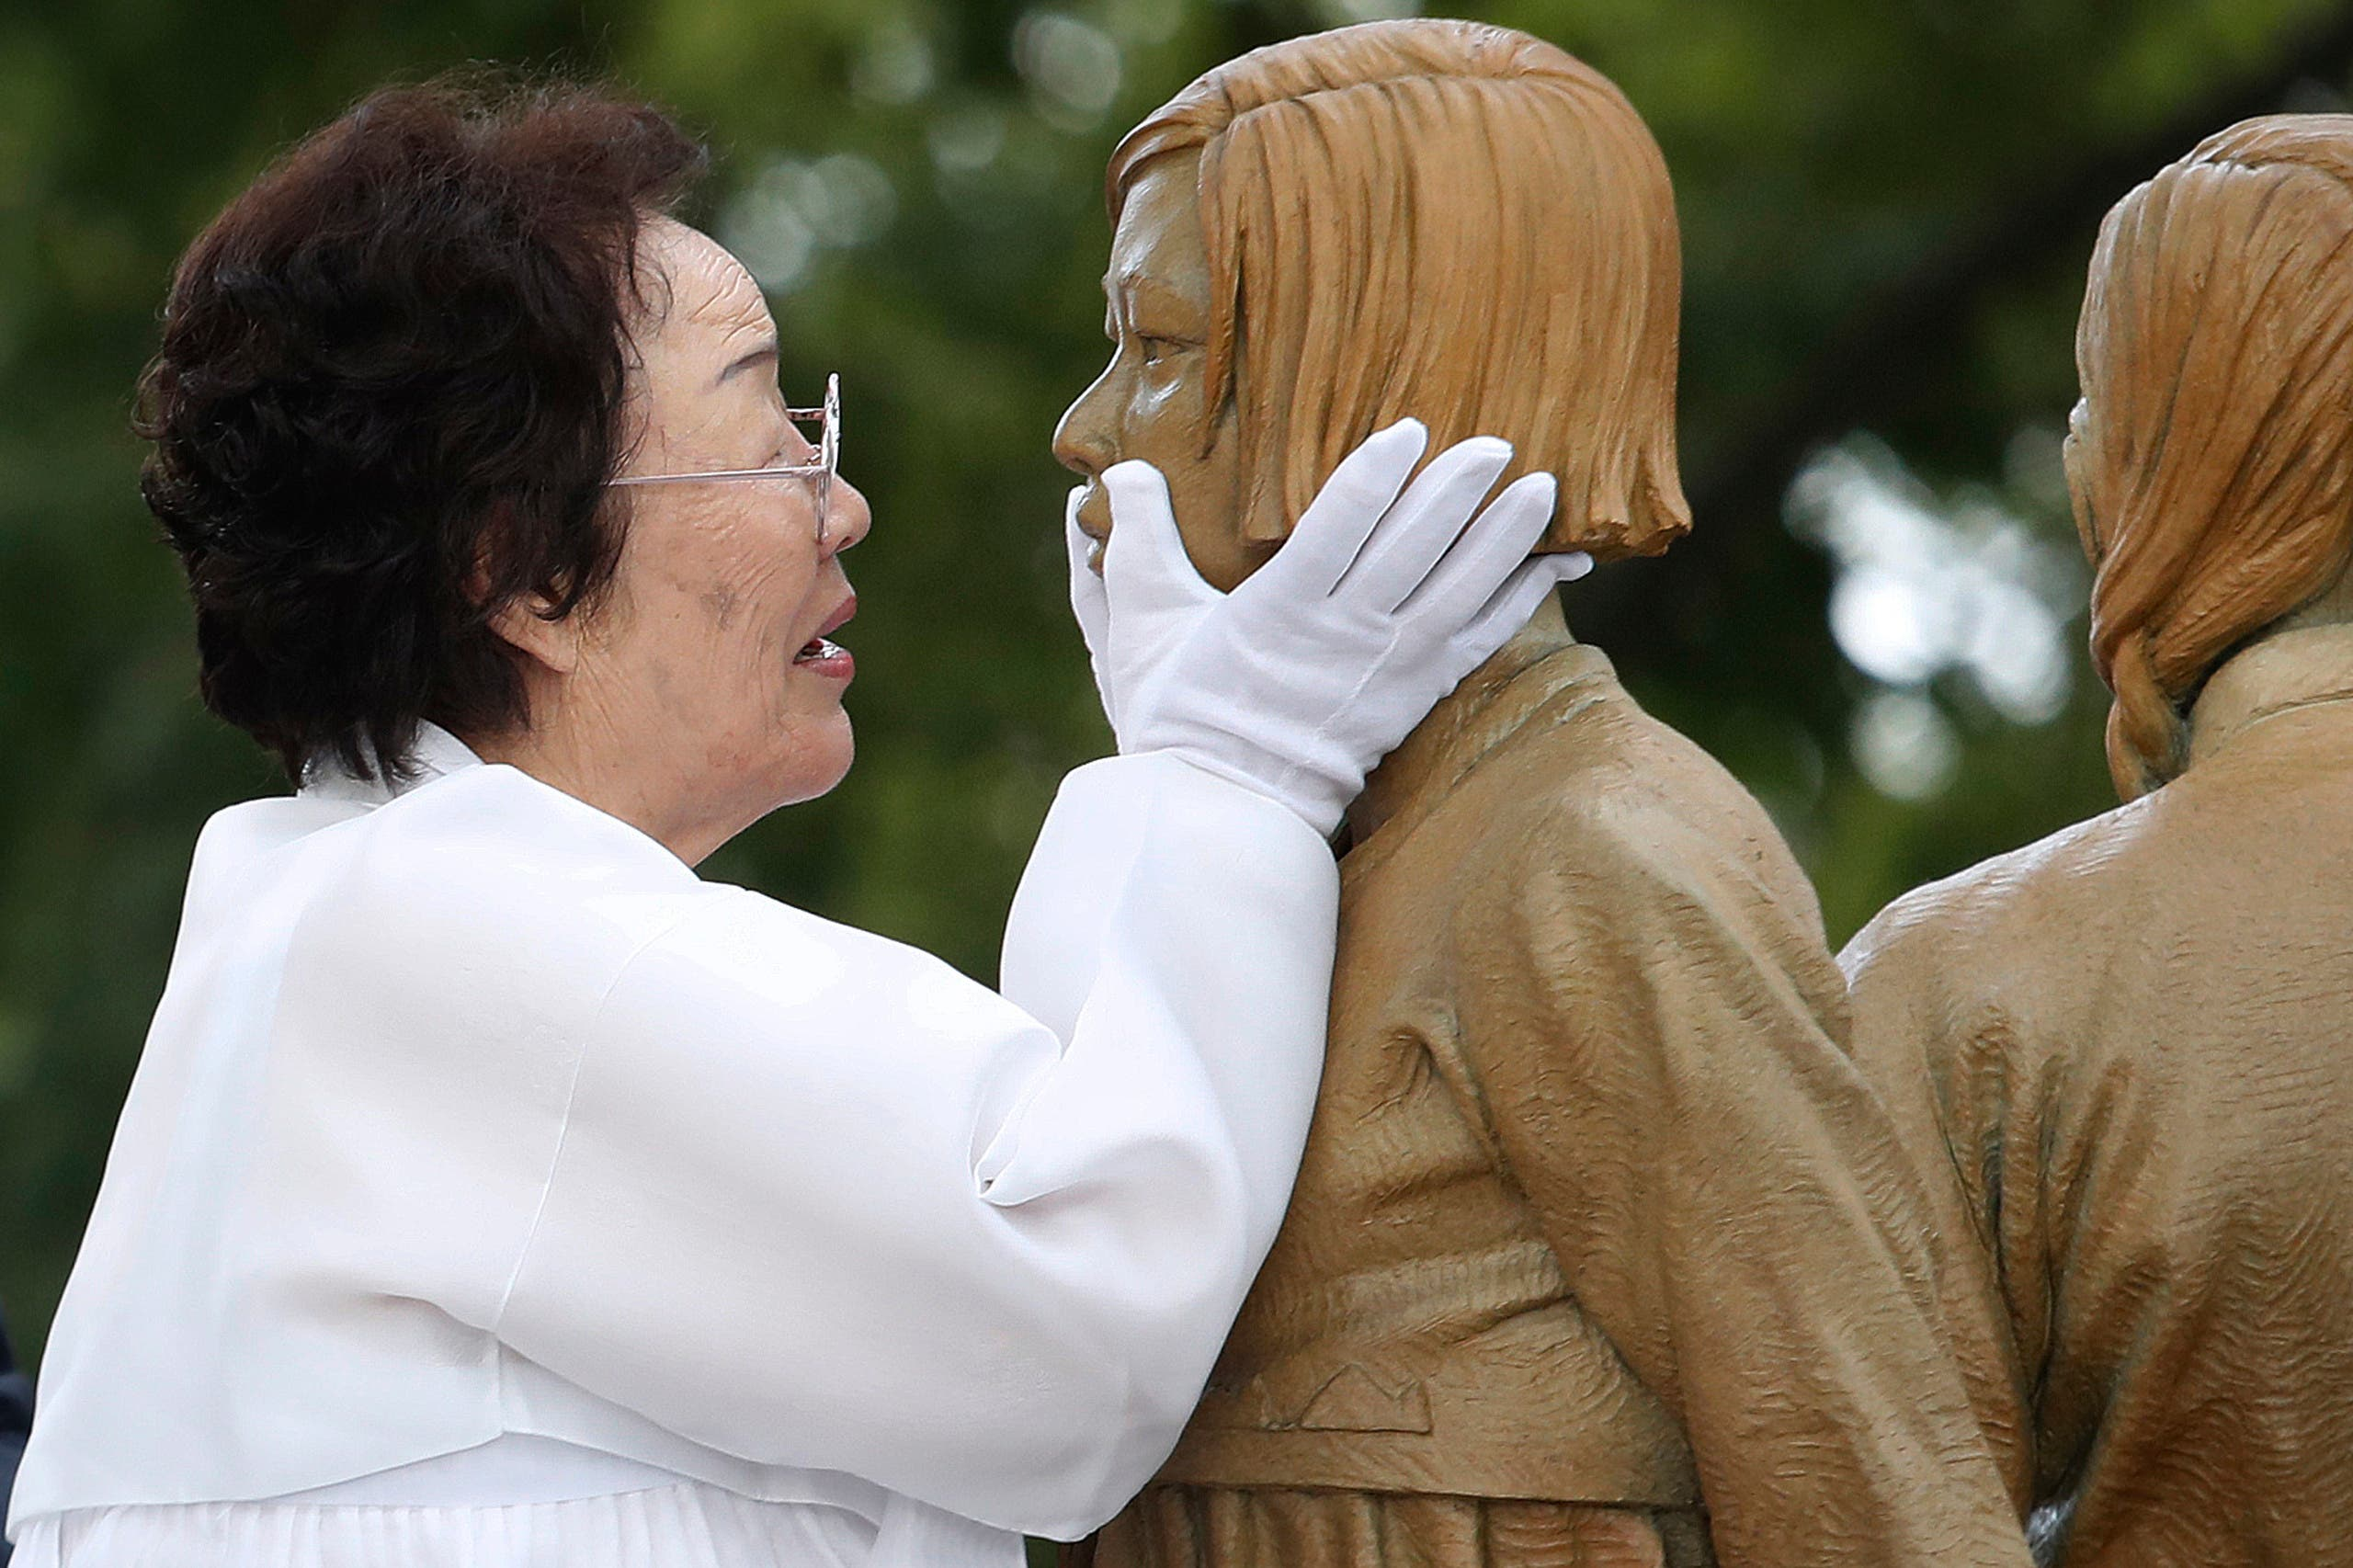 In this Aug. 14, 2019, file photo, Lee Yong-soo, who was forced to serve for the Japanese troops as a sex slave during World War II, touches the face of a statue of a girl symbolizing the issue of wartime comfort women during its unveiling ceremony in Seoul, South Korea. (File photo: AP)